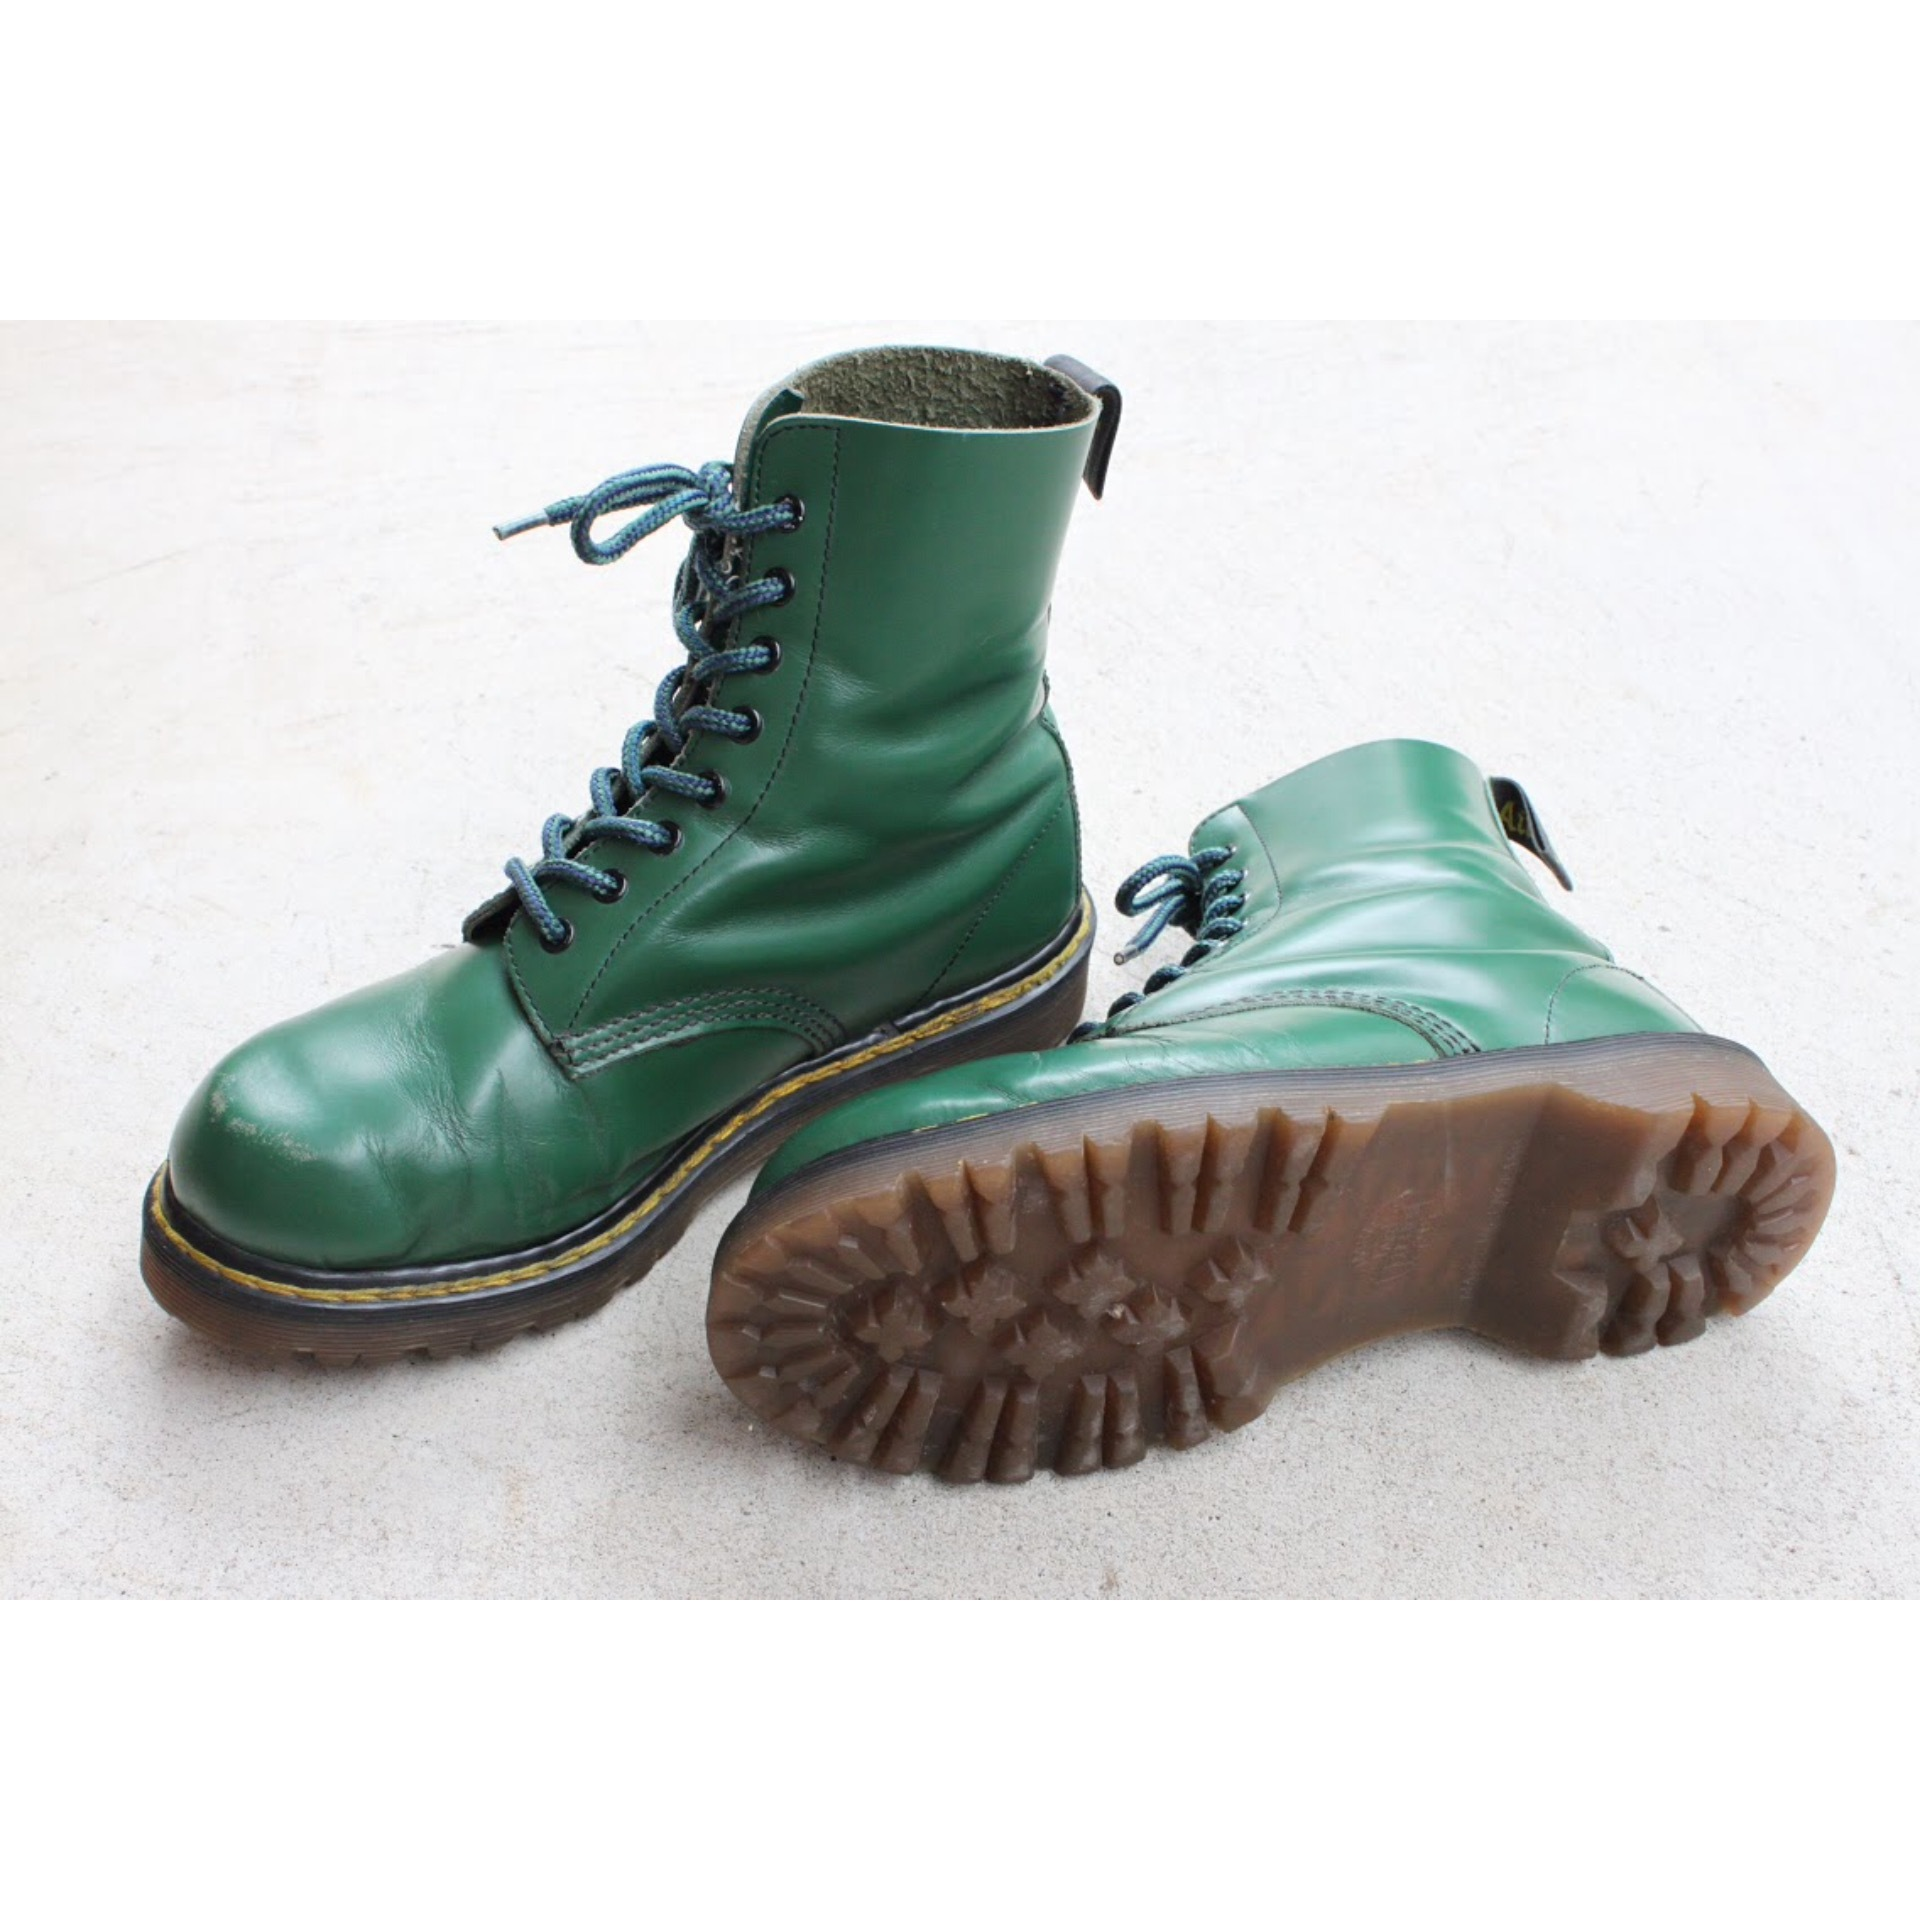 Dr. Martins 8 hole Made in England Size 5